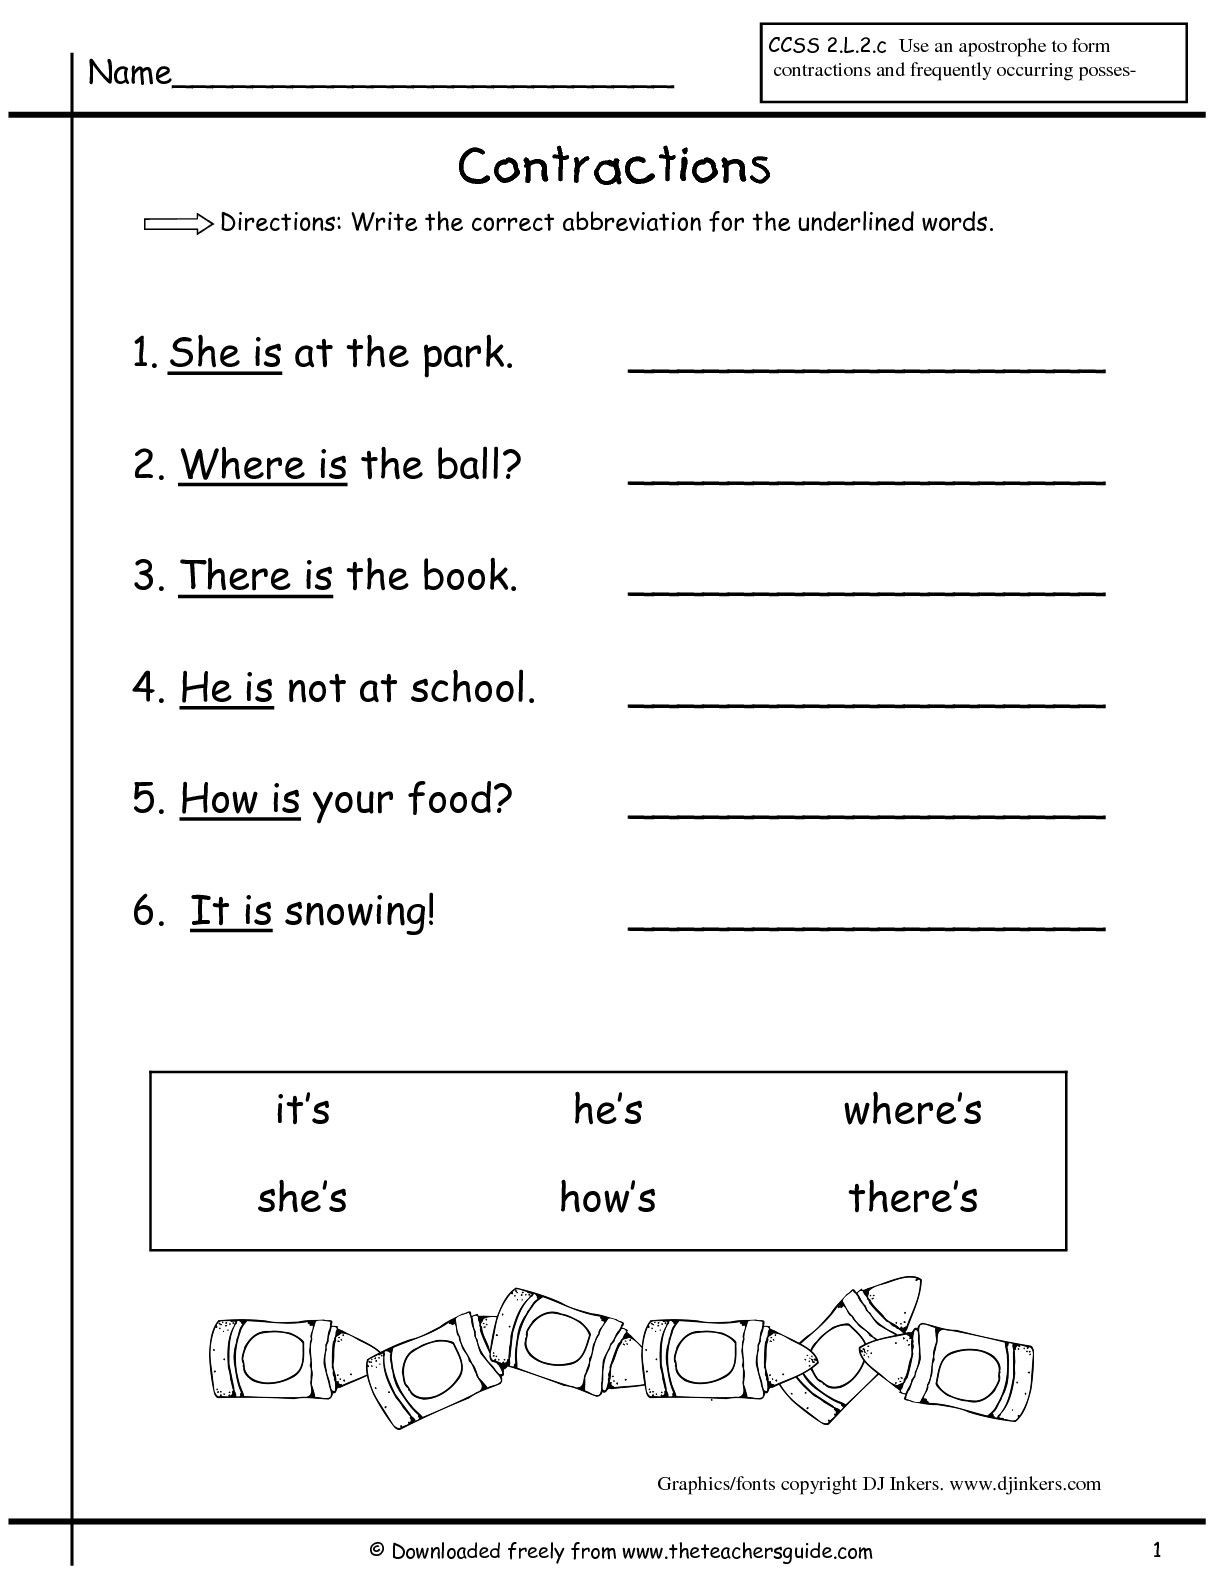 7th Grade Science Worksheets